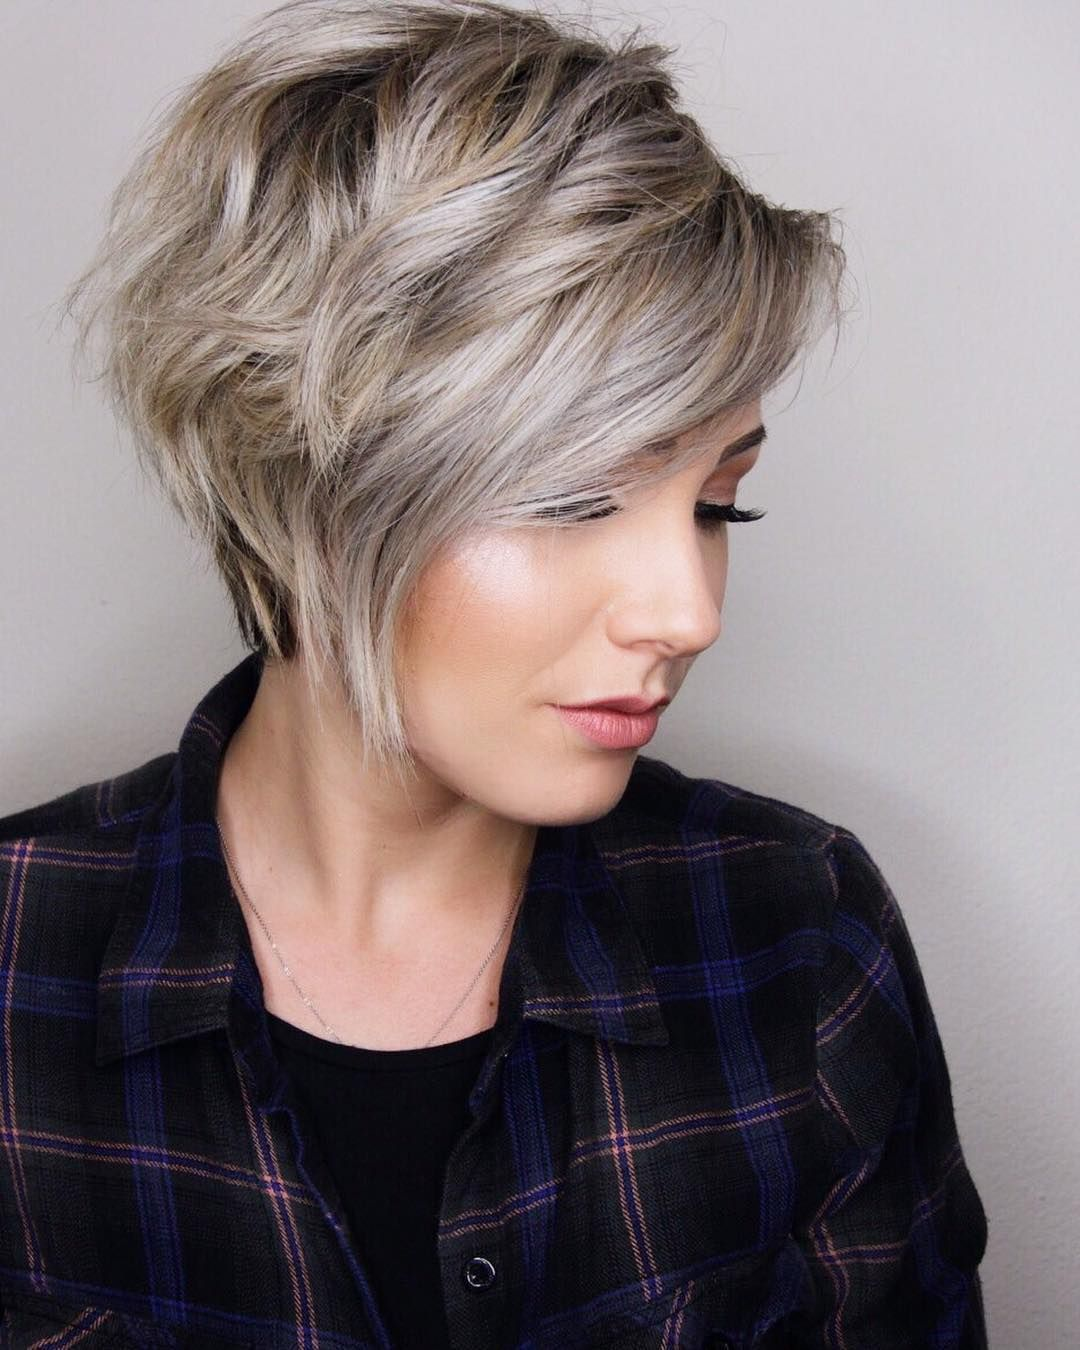 10 trendy layered short haircut ideas 2019 - 'extra special